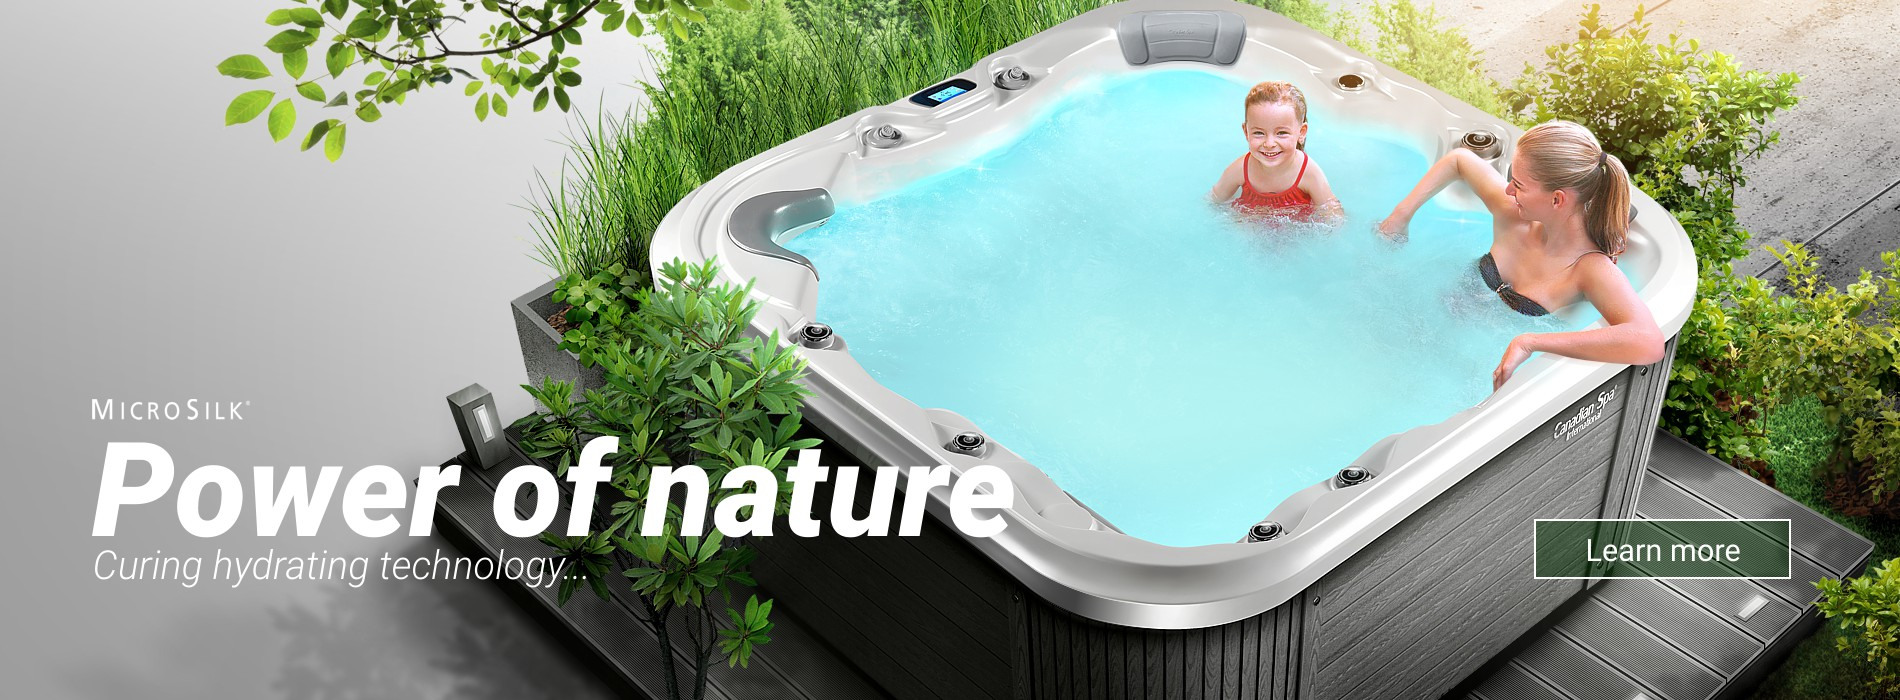 Power of Nature - Microsilk Hydrotherapy by Canadian Spa International®